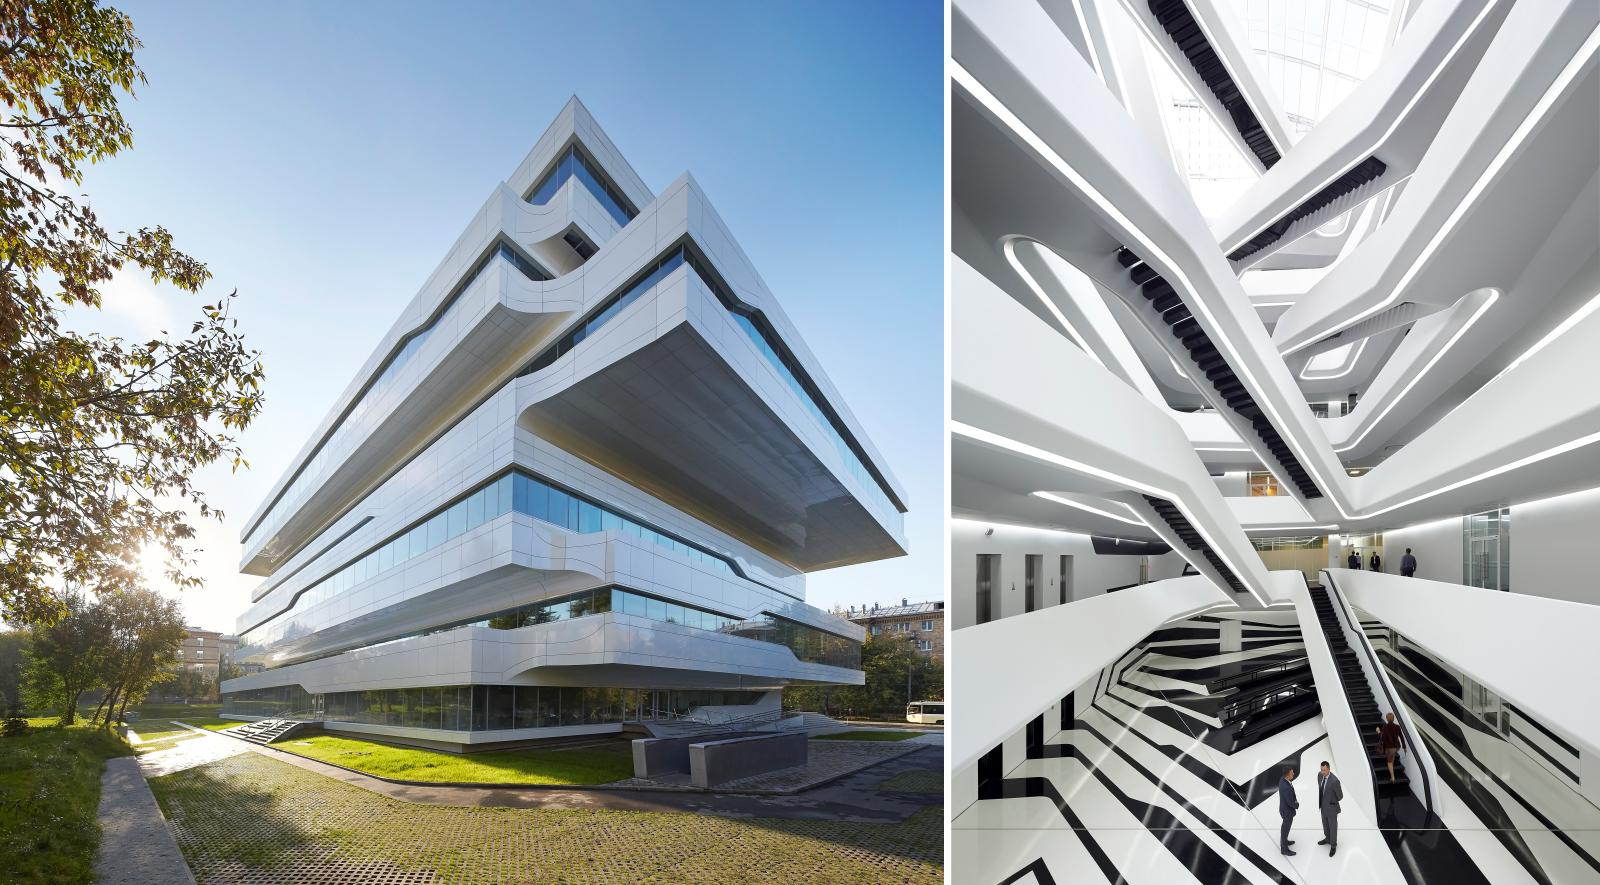 Dominion office building by zaha hadid architects zha 00 for Architecture 00